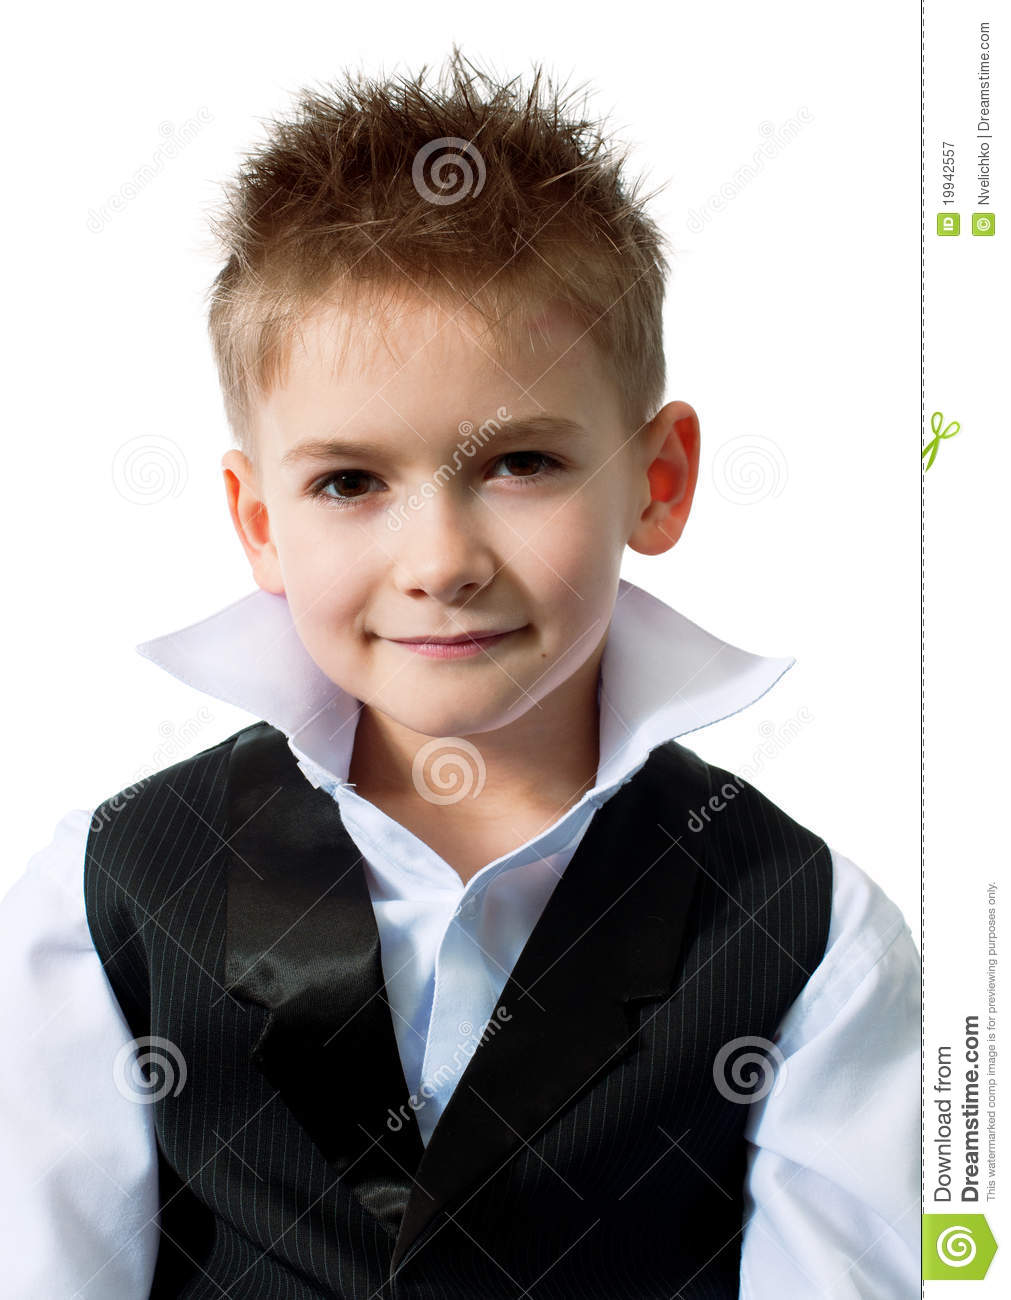 Cool little boy royalty free stock photography image 19942557 - Cool boys photo ...